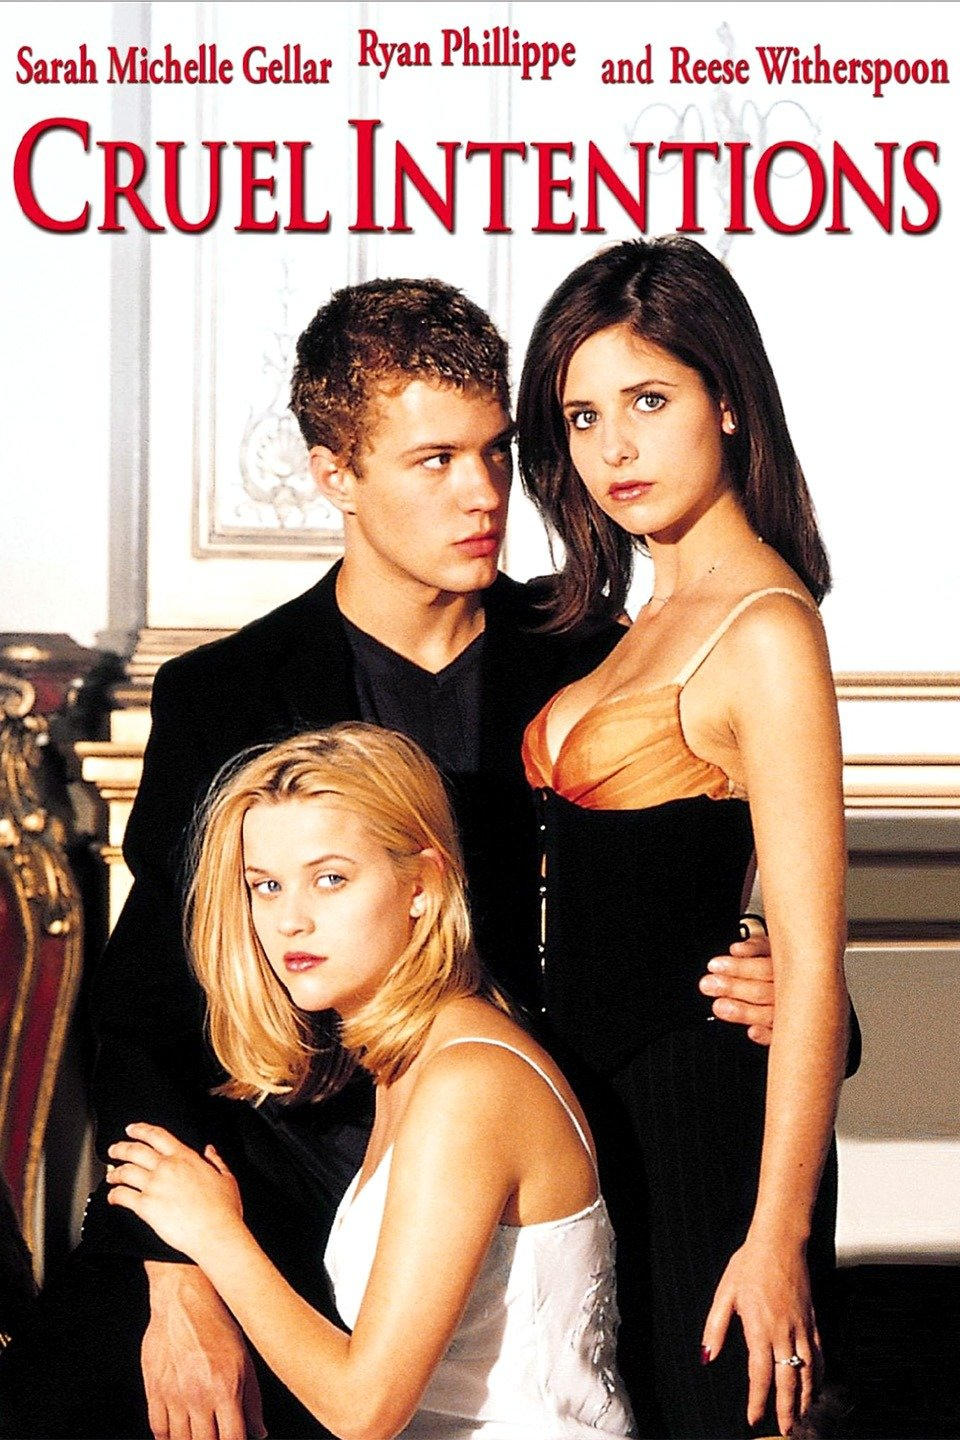 Cruel Intentions - 20Th Anniversary